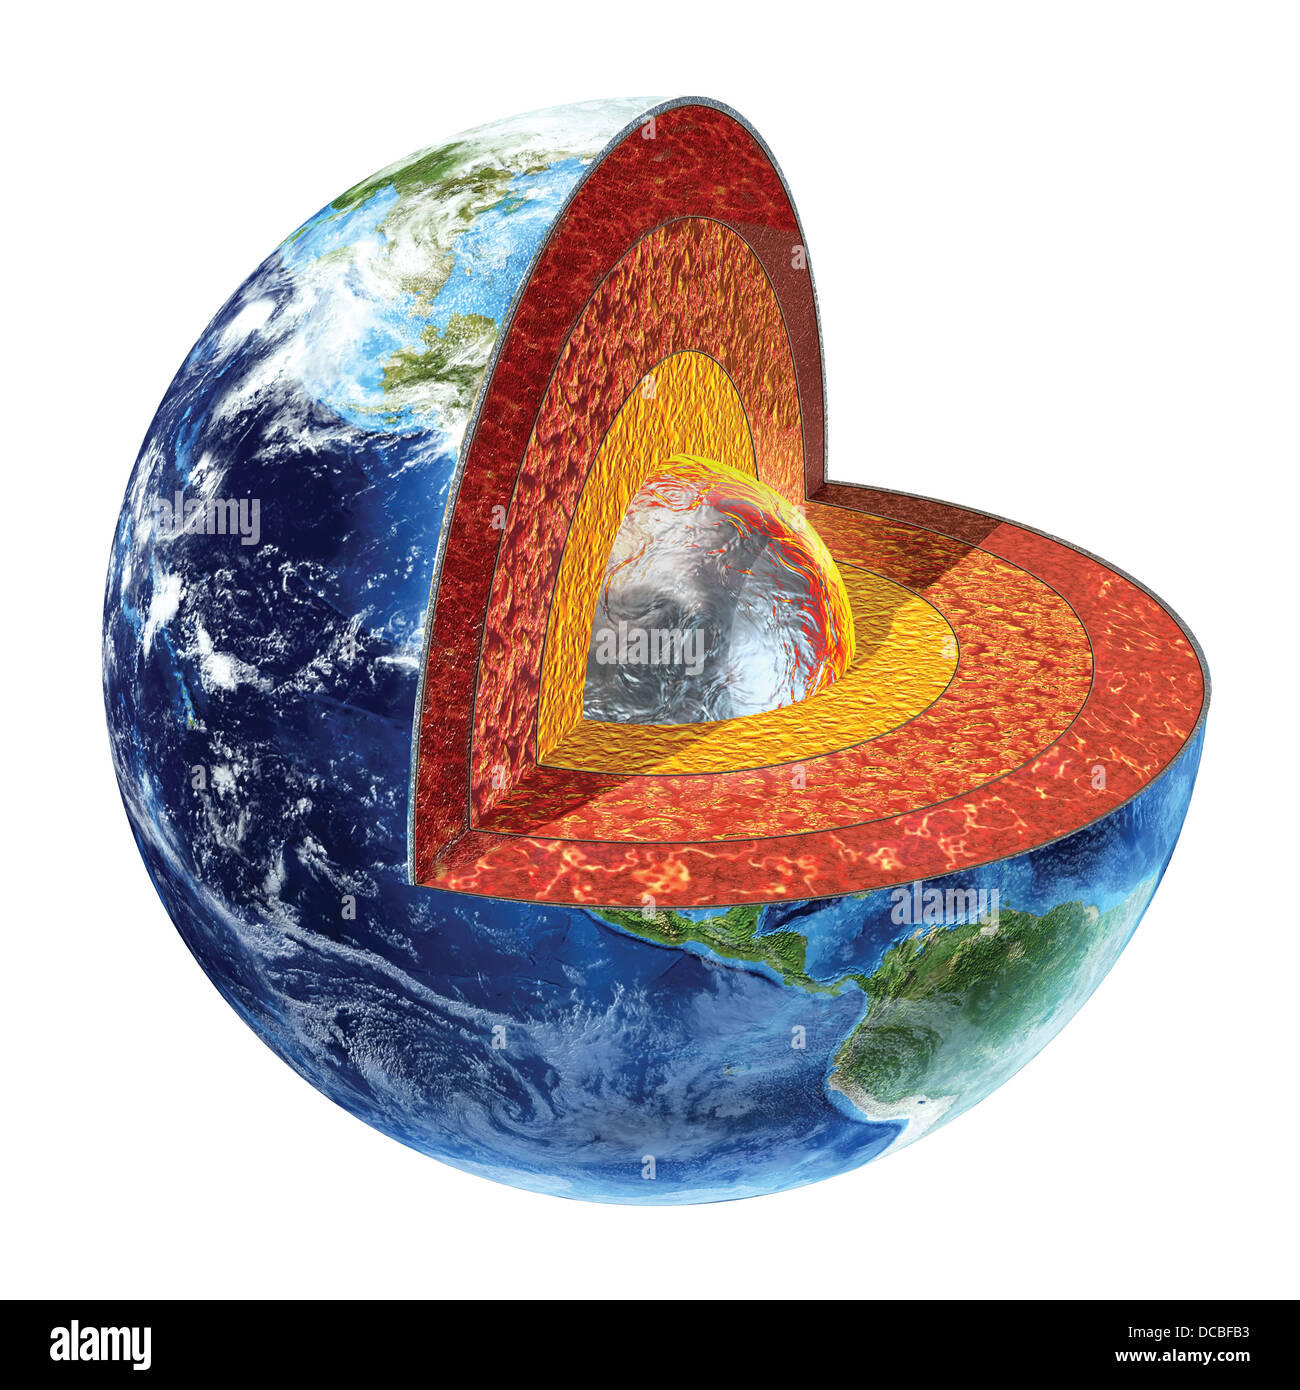 Earth cross section. Showing the inner core, made by solid iron and nickel, with a temperature of 4500° Celsius. - Stock Image